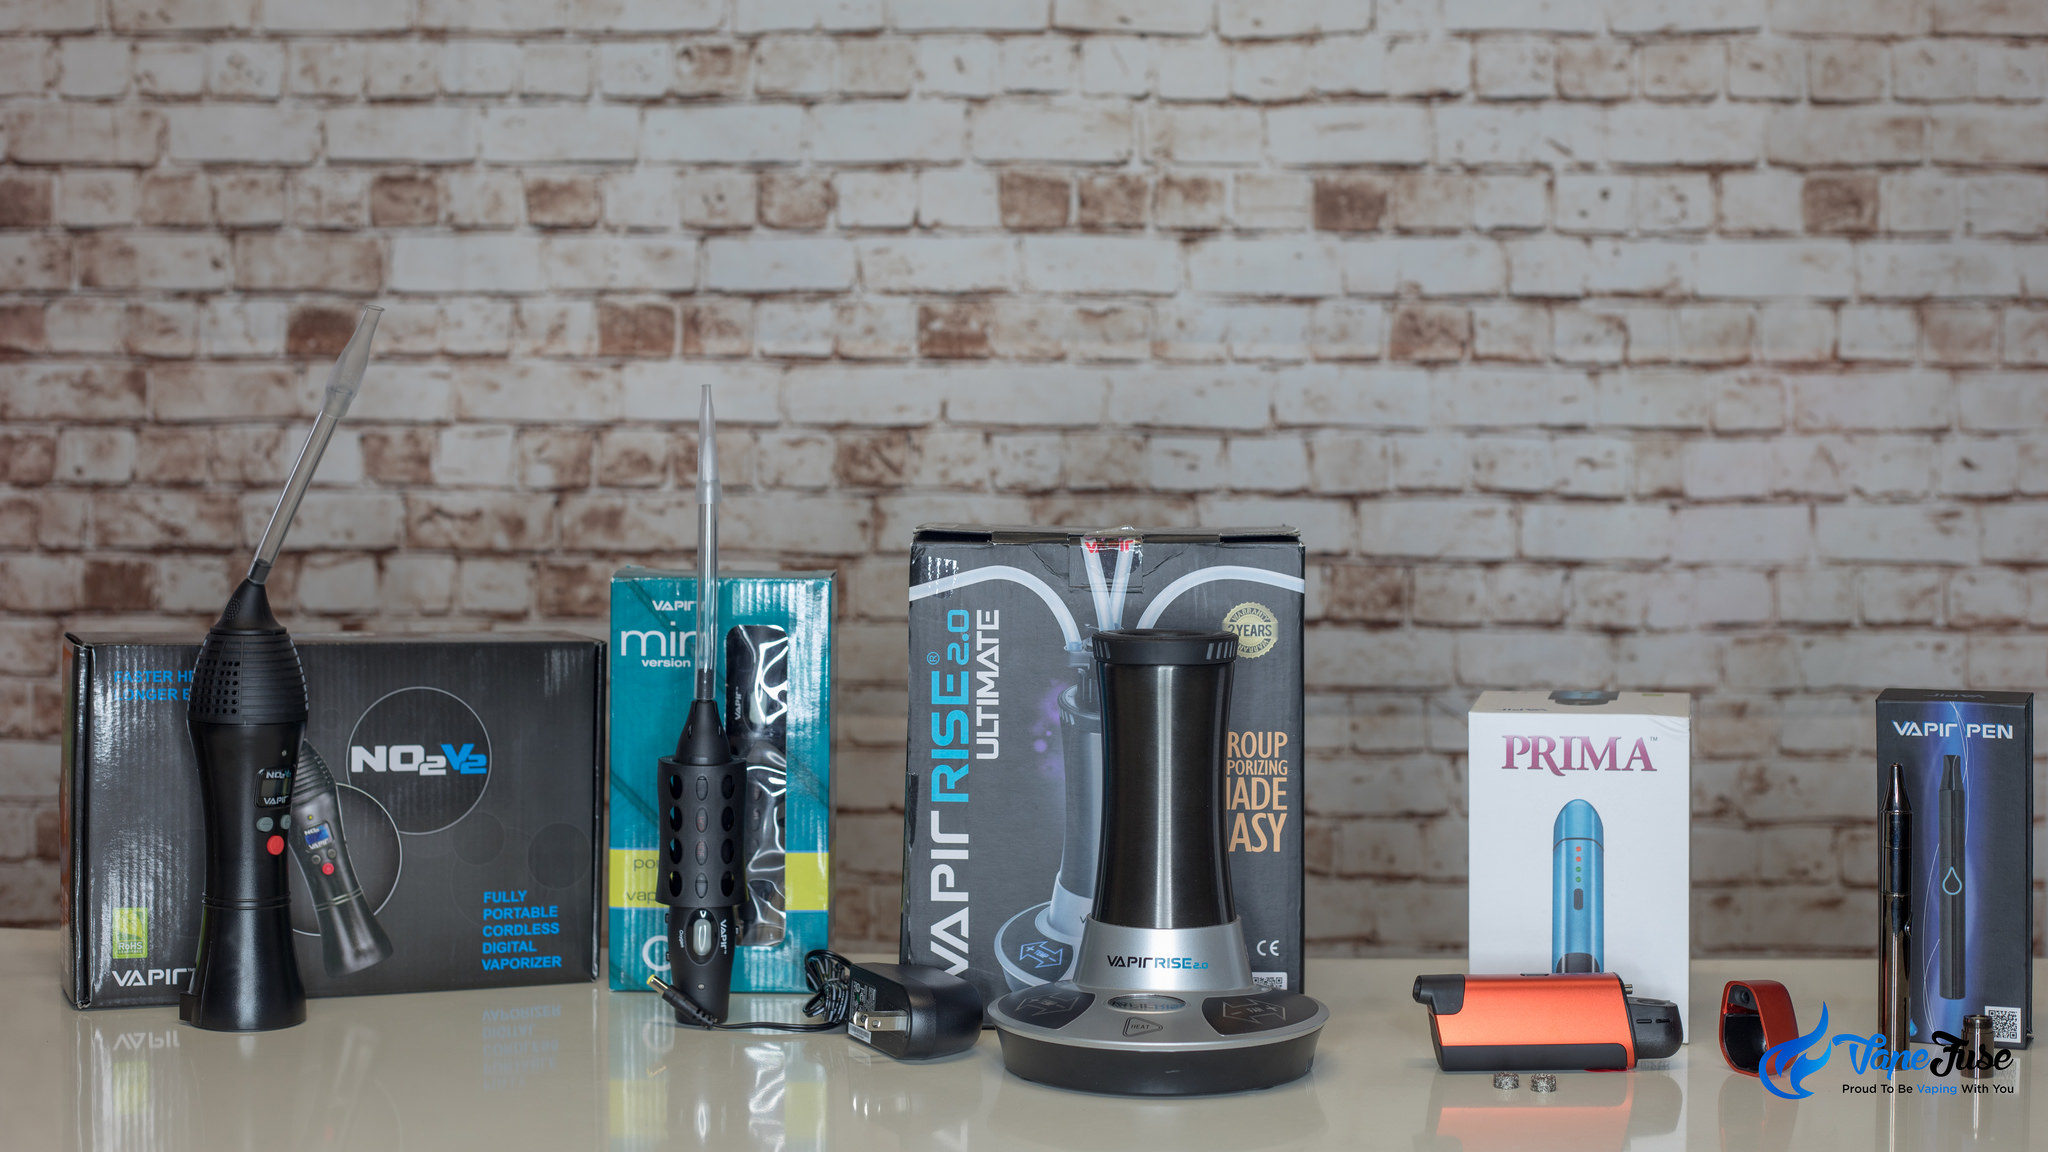 Vapir Through the Years: A Look Back at One of Vaping's Pioneers